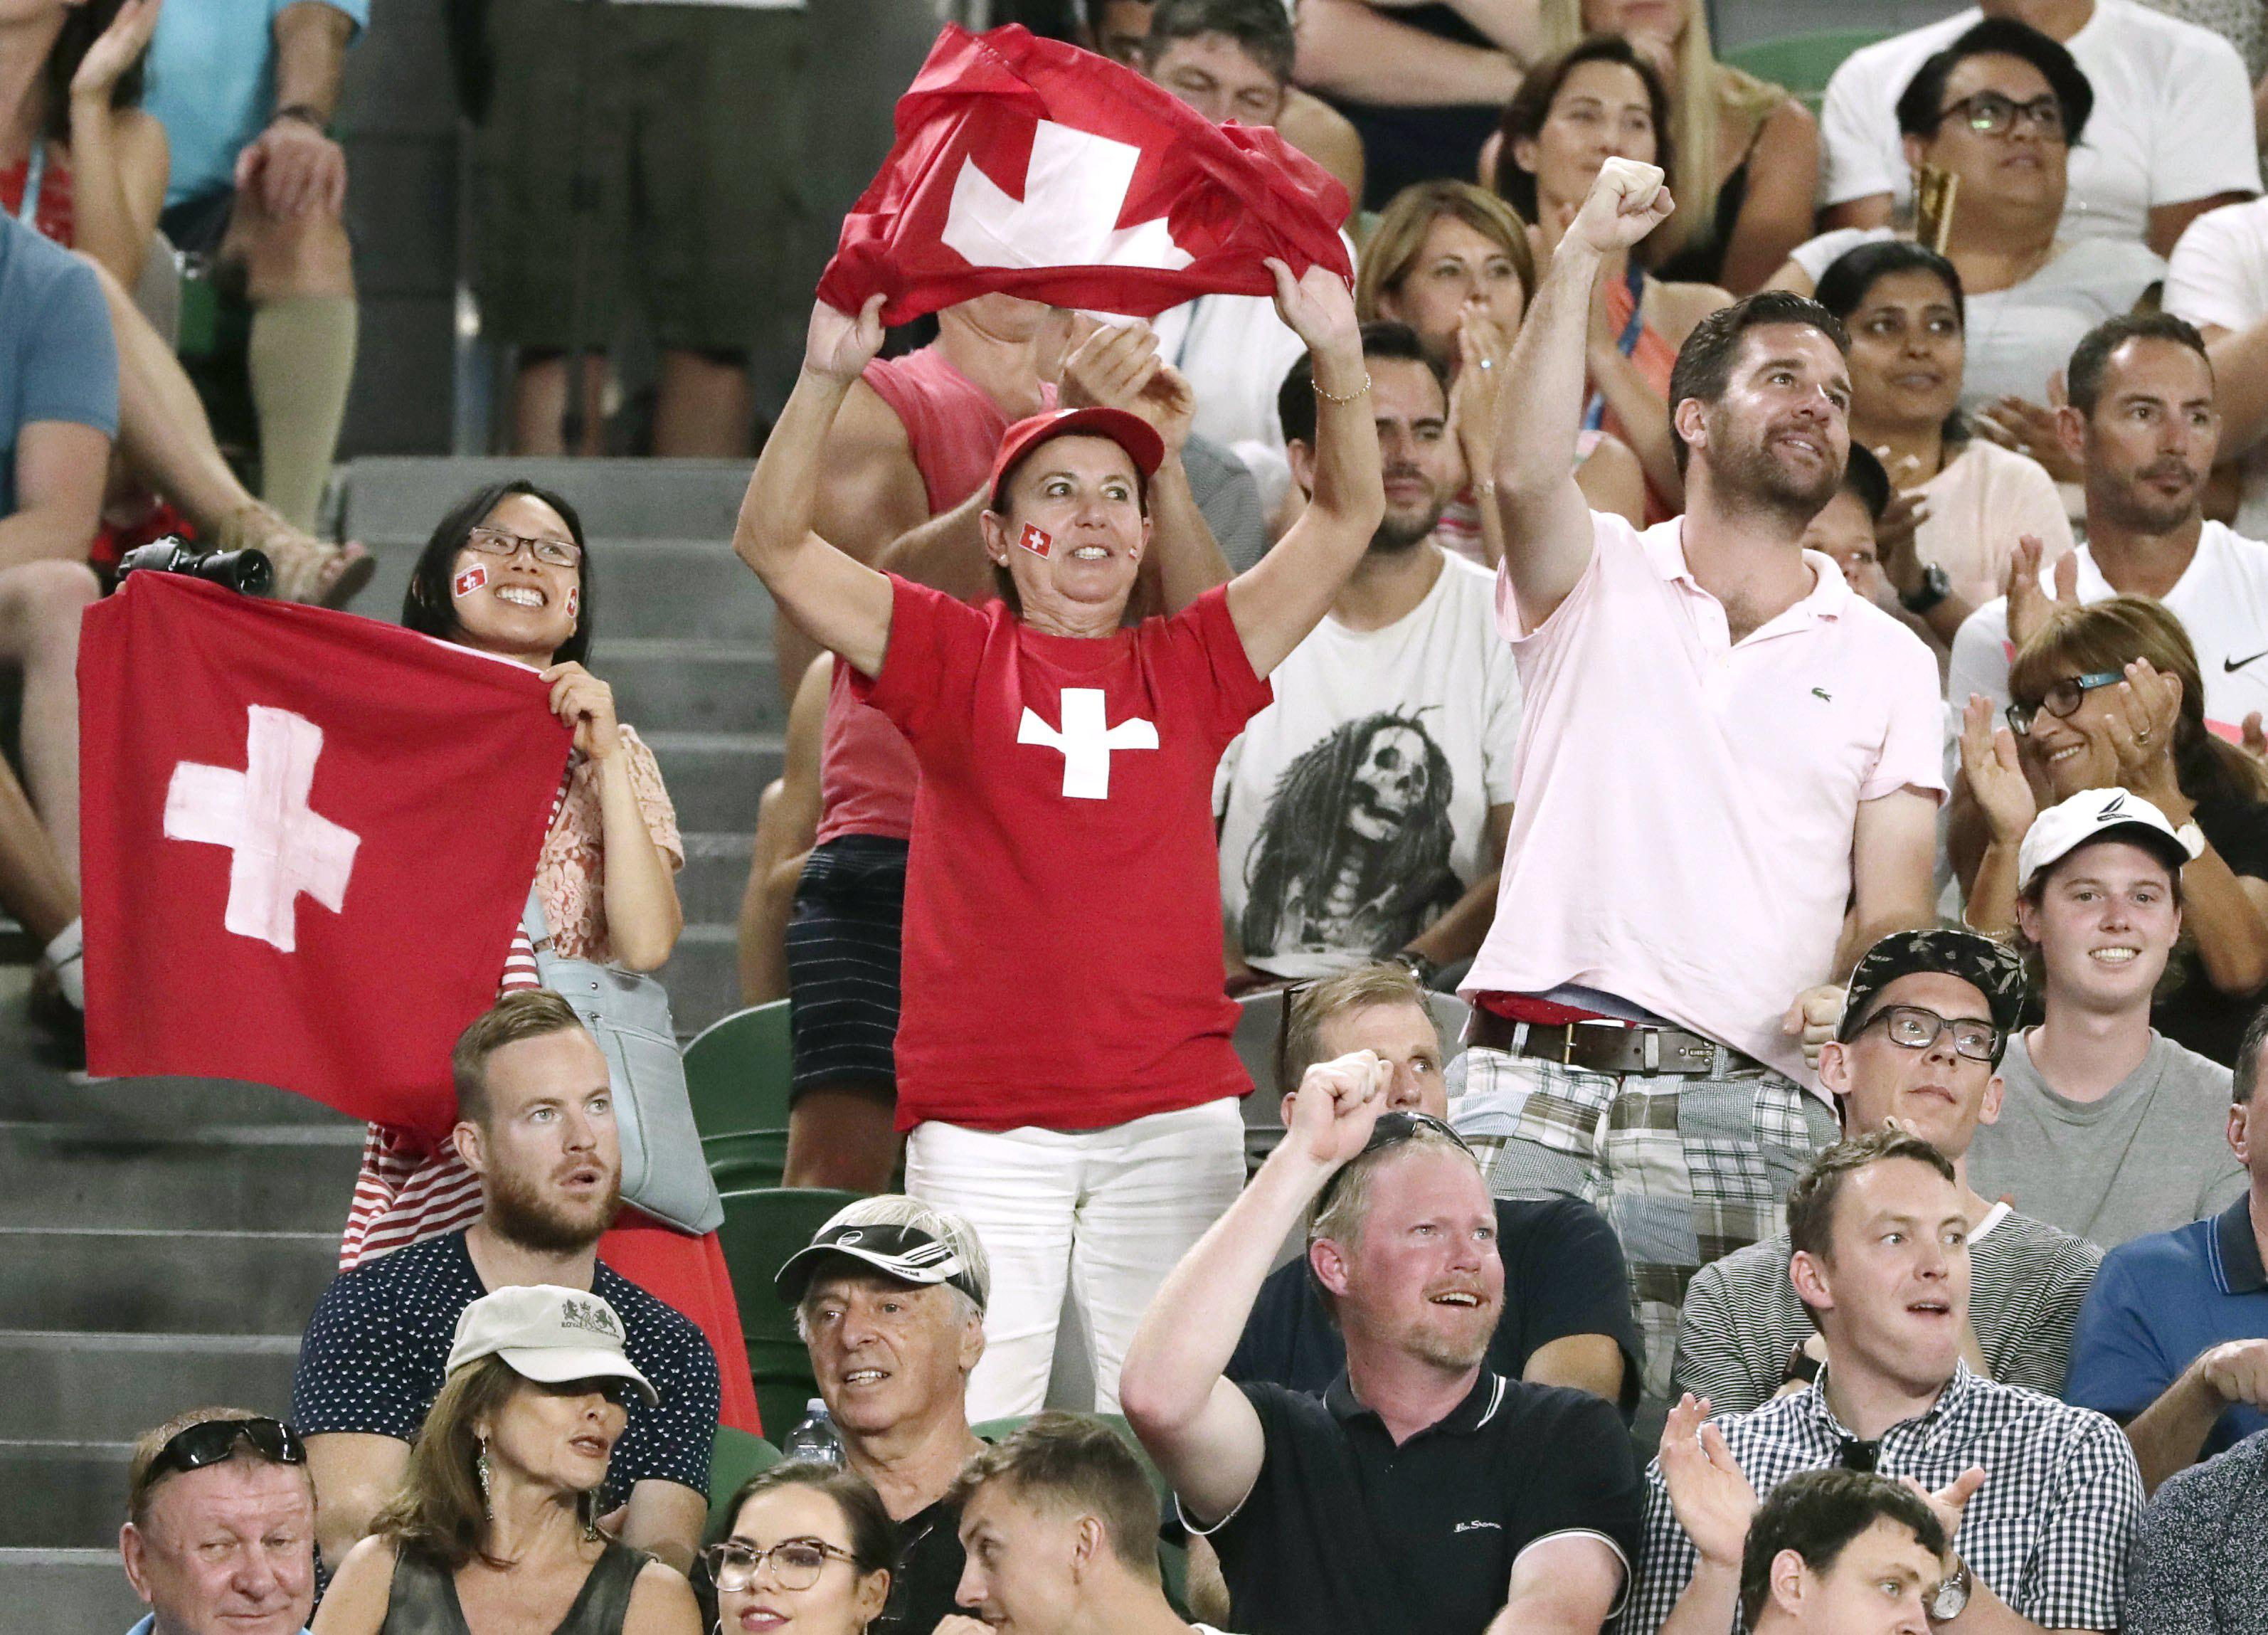 Federer fans were loud inside the covered arena